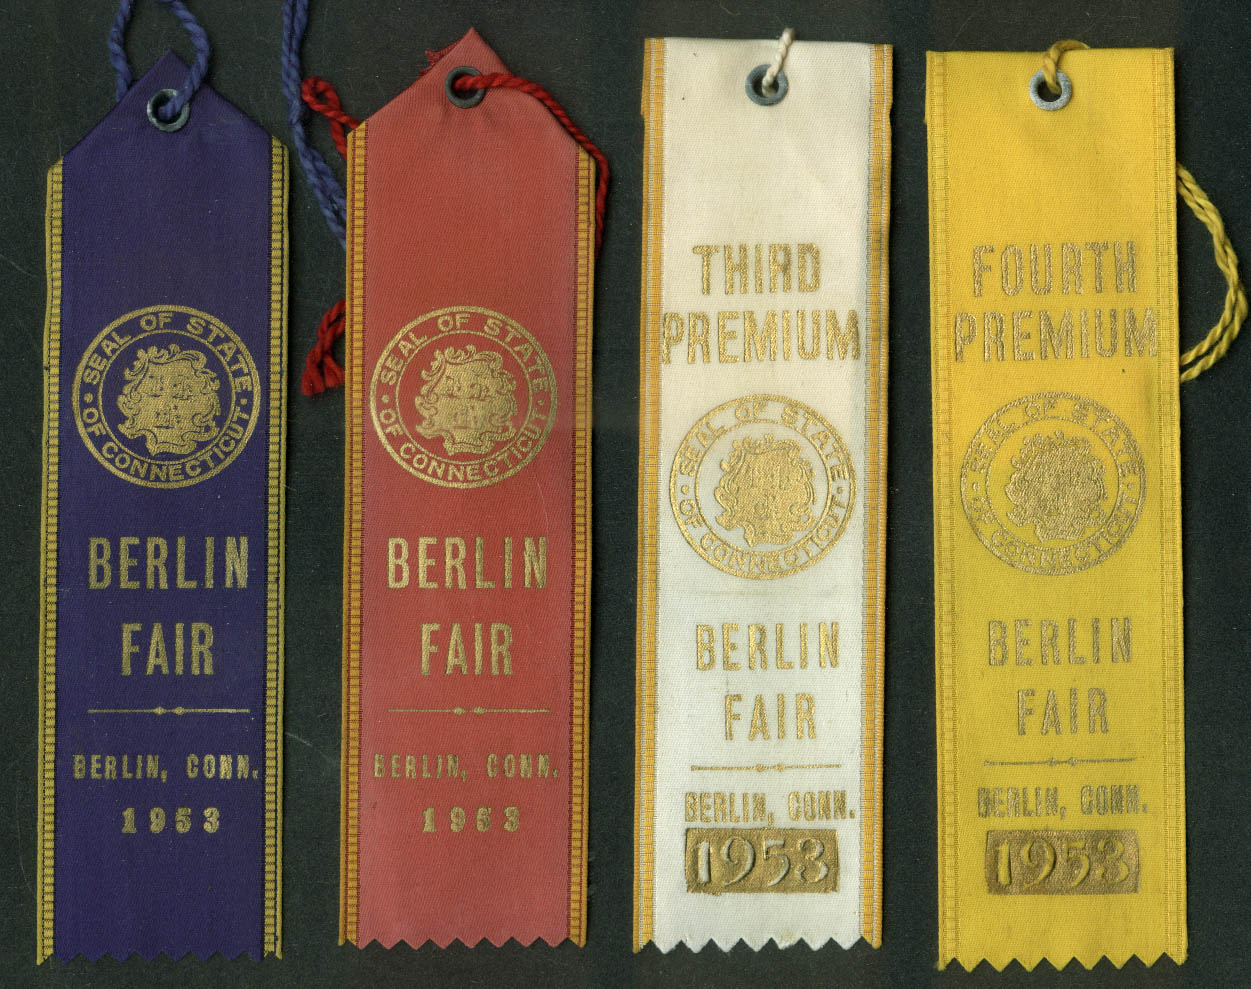 Berlin Connecticut Fair set of prize ribbons 1953 poultry cattle livestock +